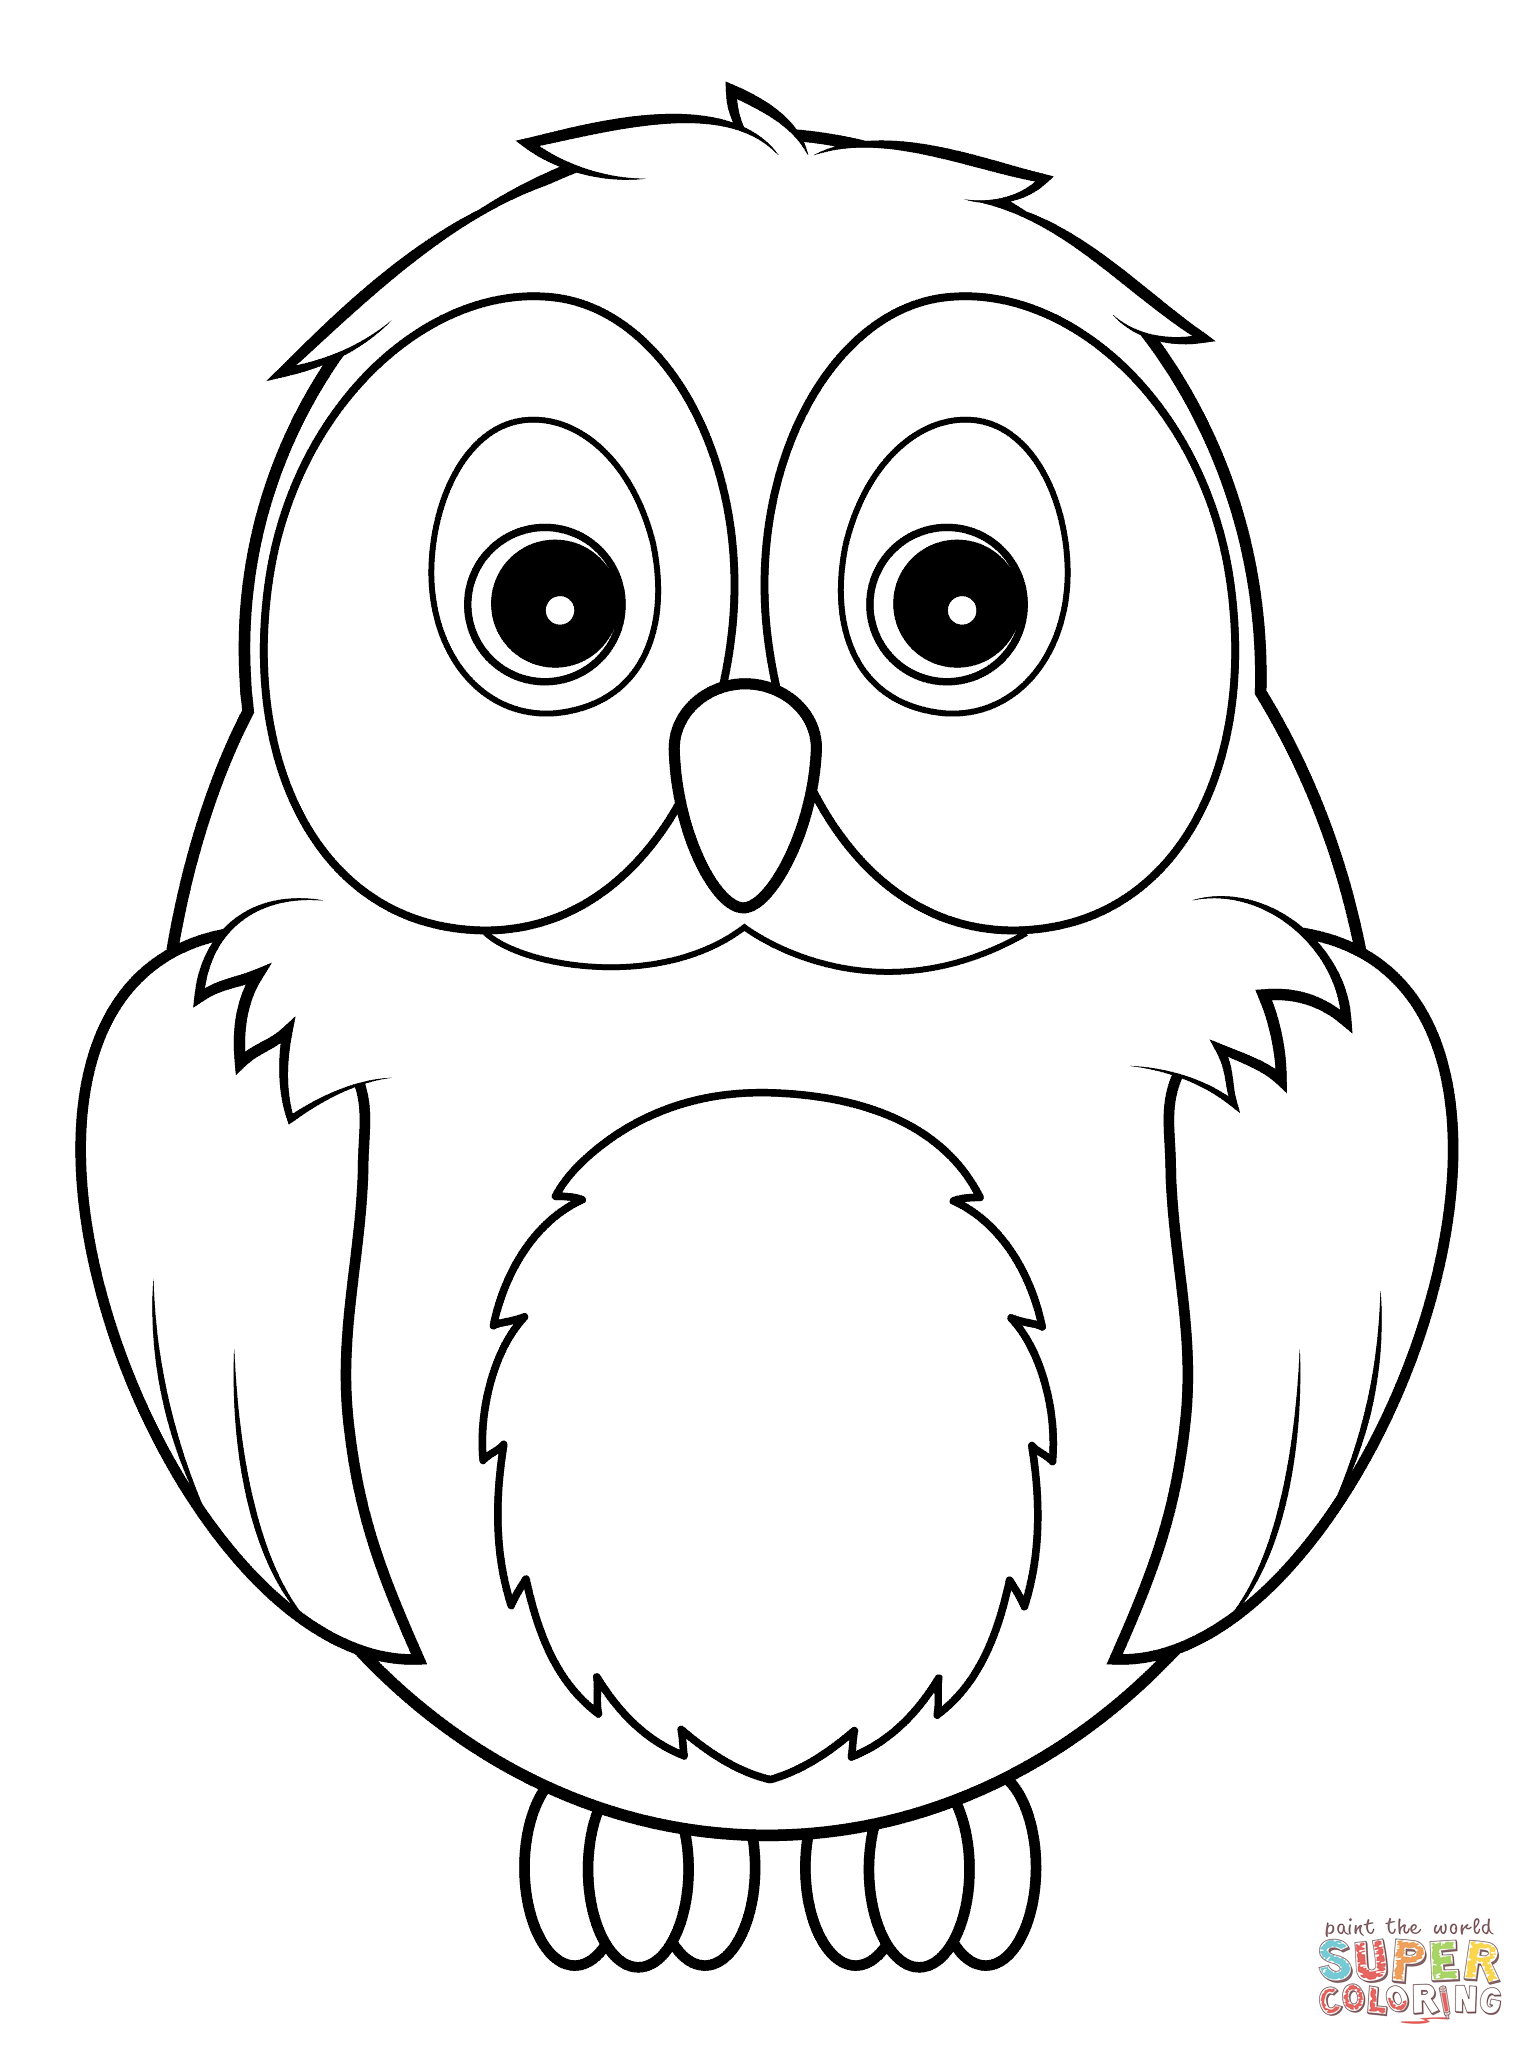 owl cartoon coloring pages cutest cartoon owl coloring page free printable coloring owl pages cartoon coloring